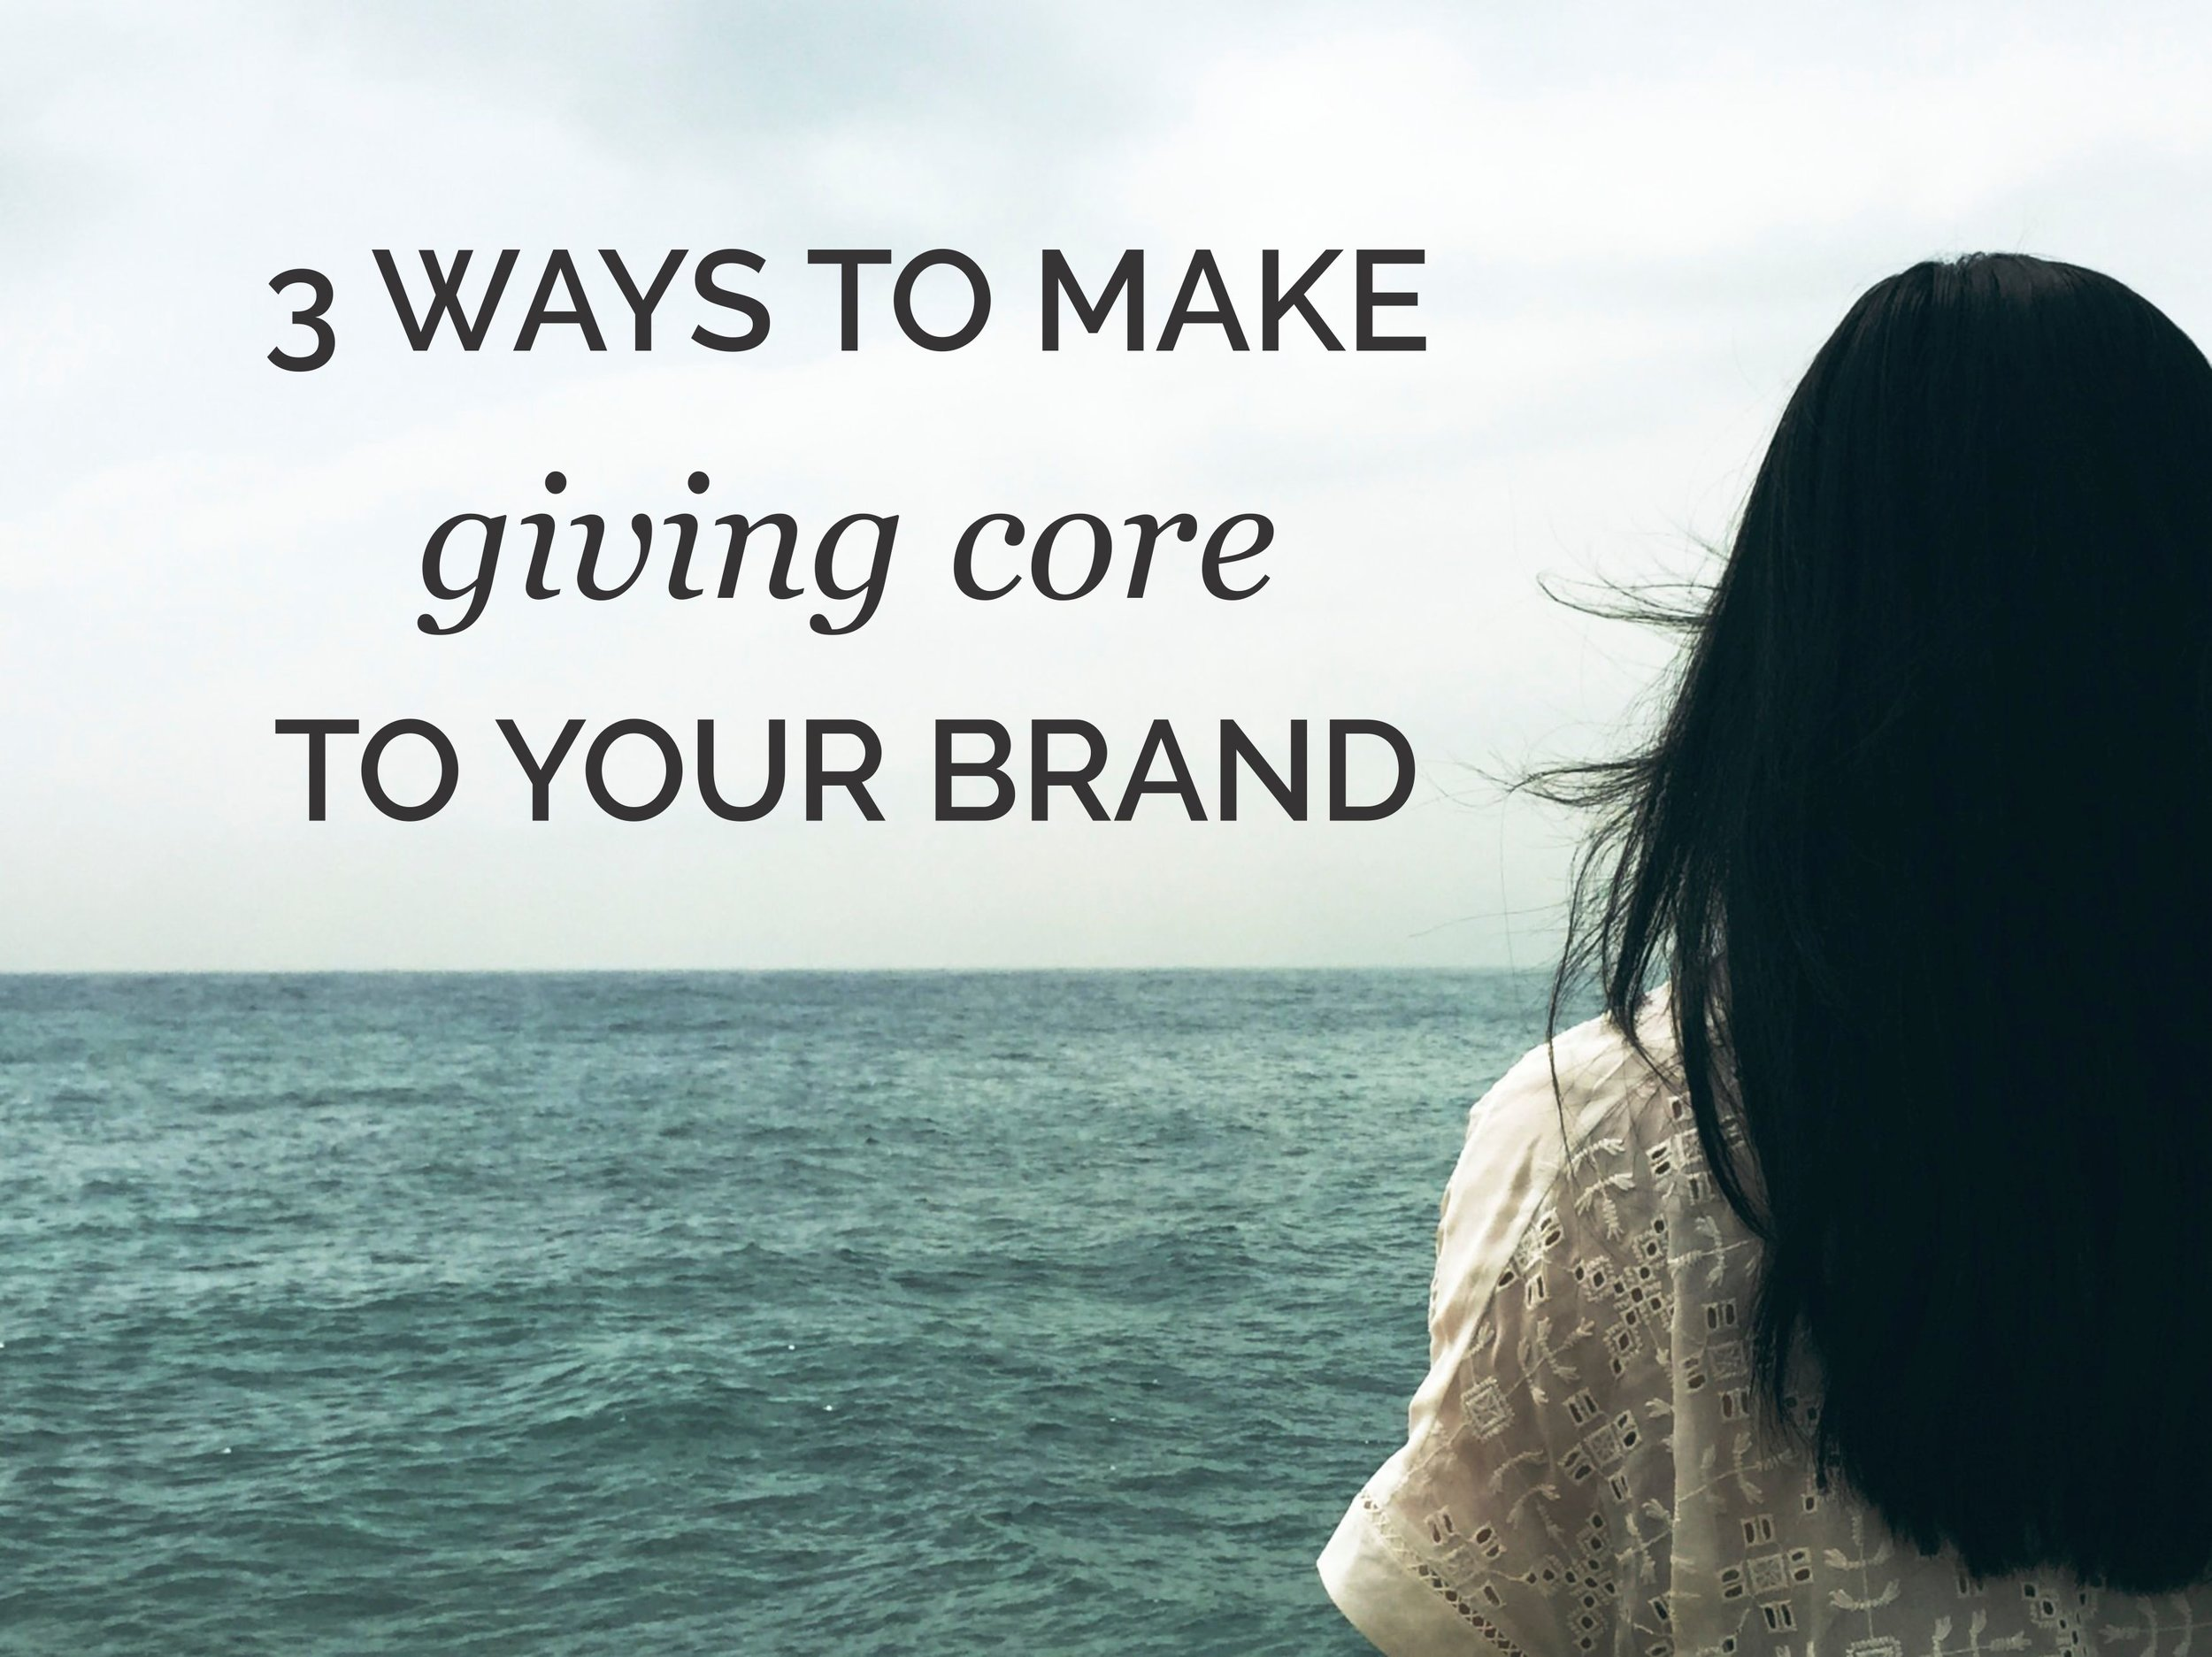 3 ways to make giving core to your brand 2